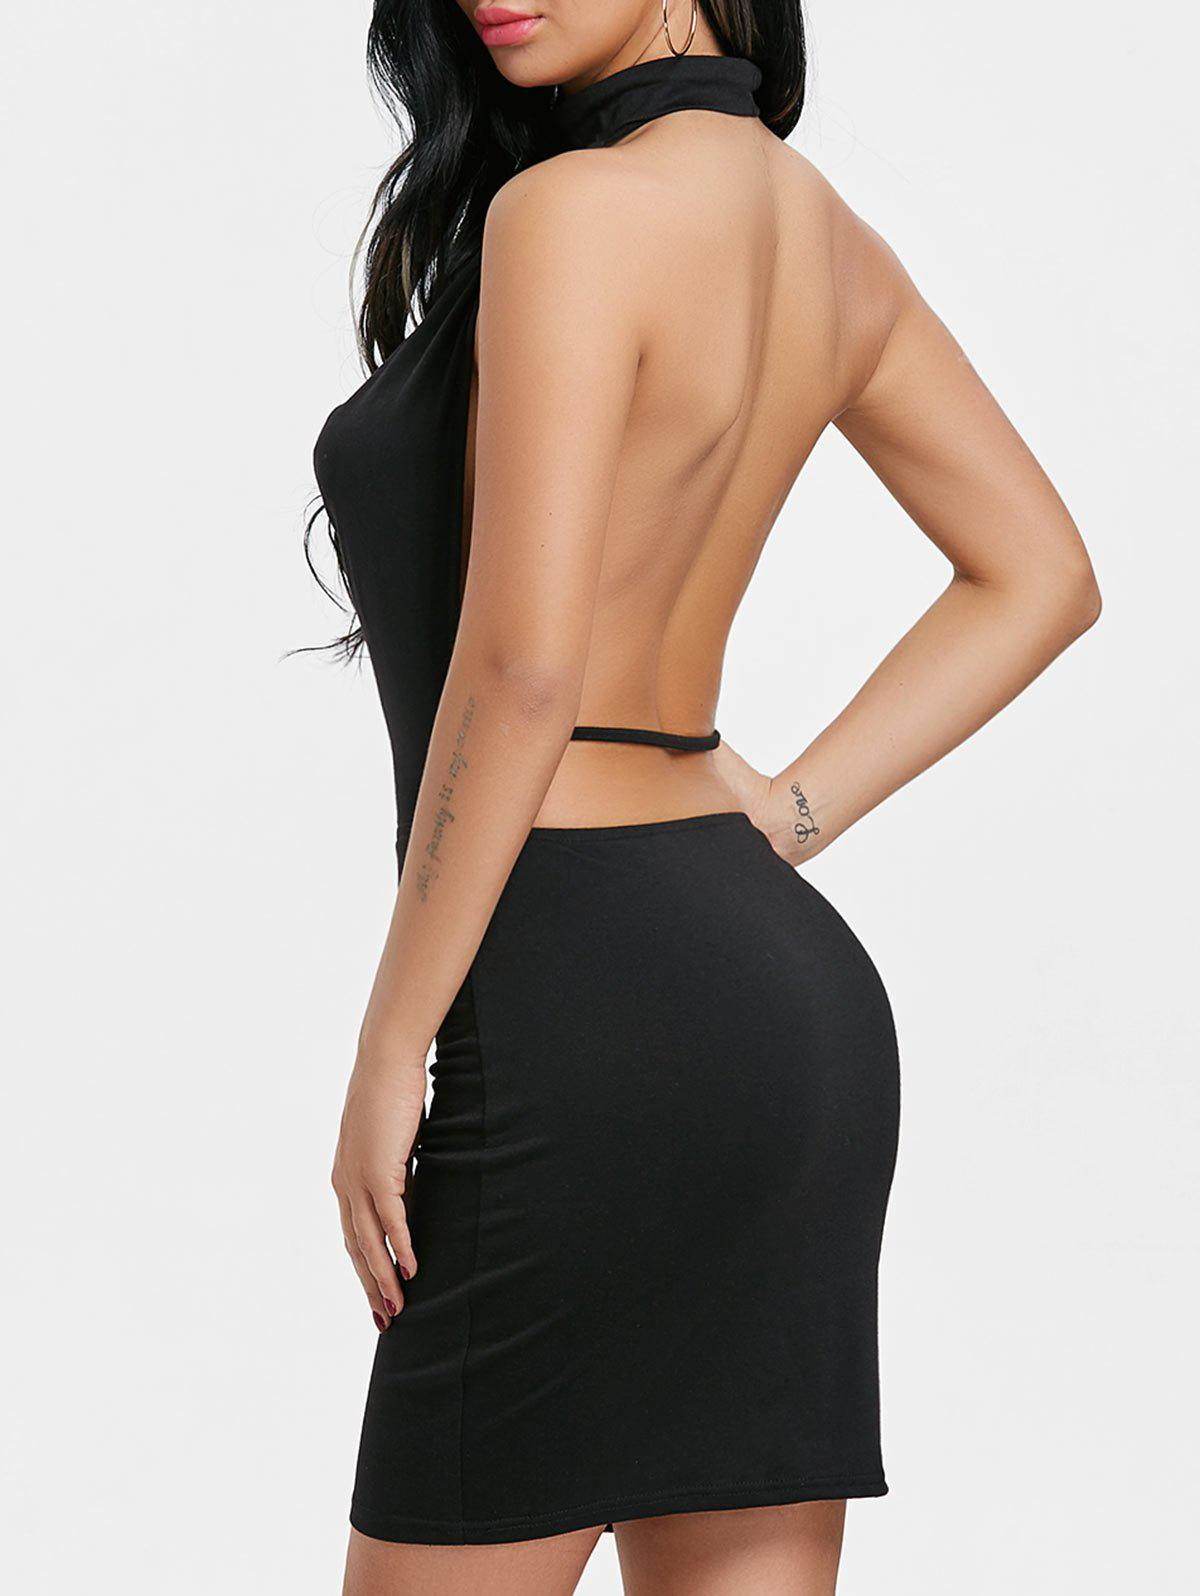 Fashion Draped Halter Neck Backlesss Dress with Choker